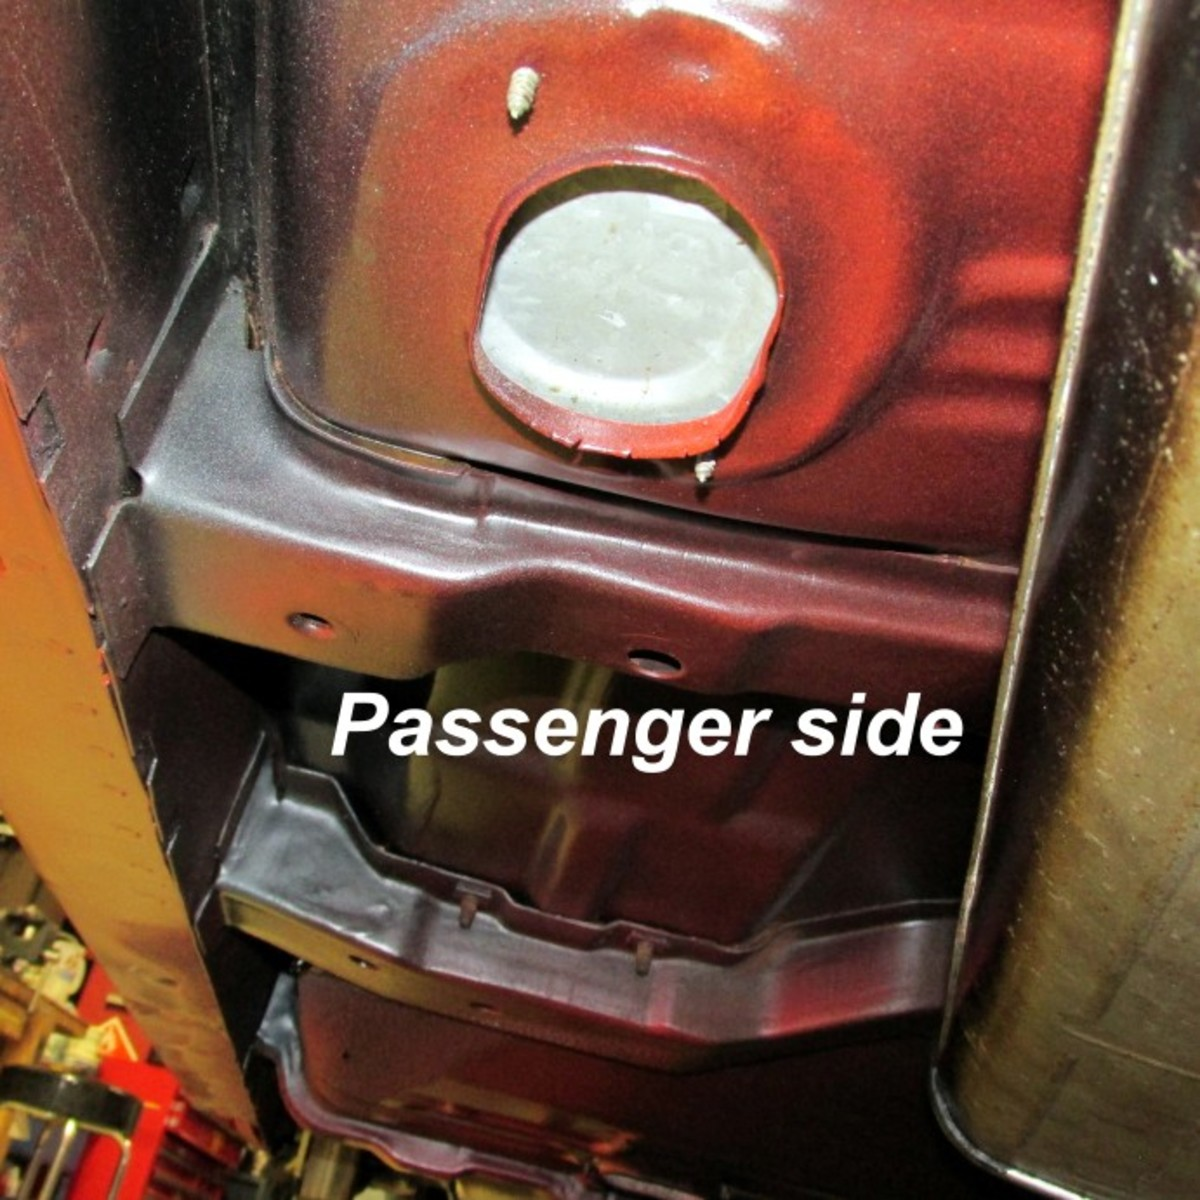 Passenger floor pan detail. Note the pattern of the paint spray.